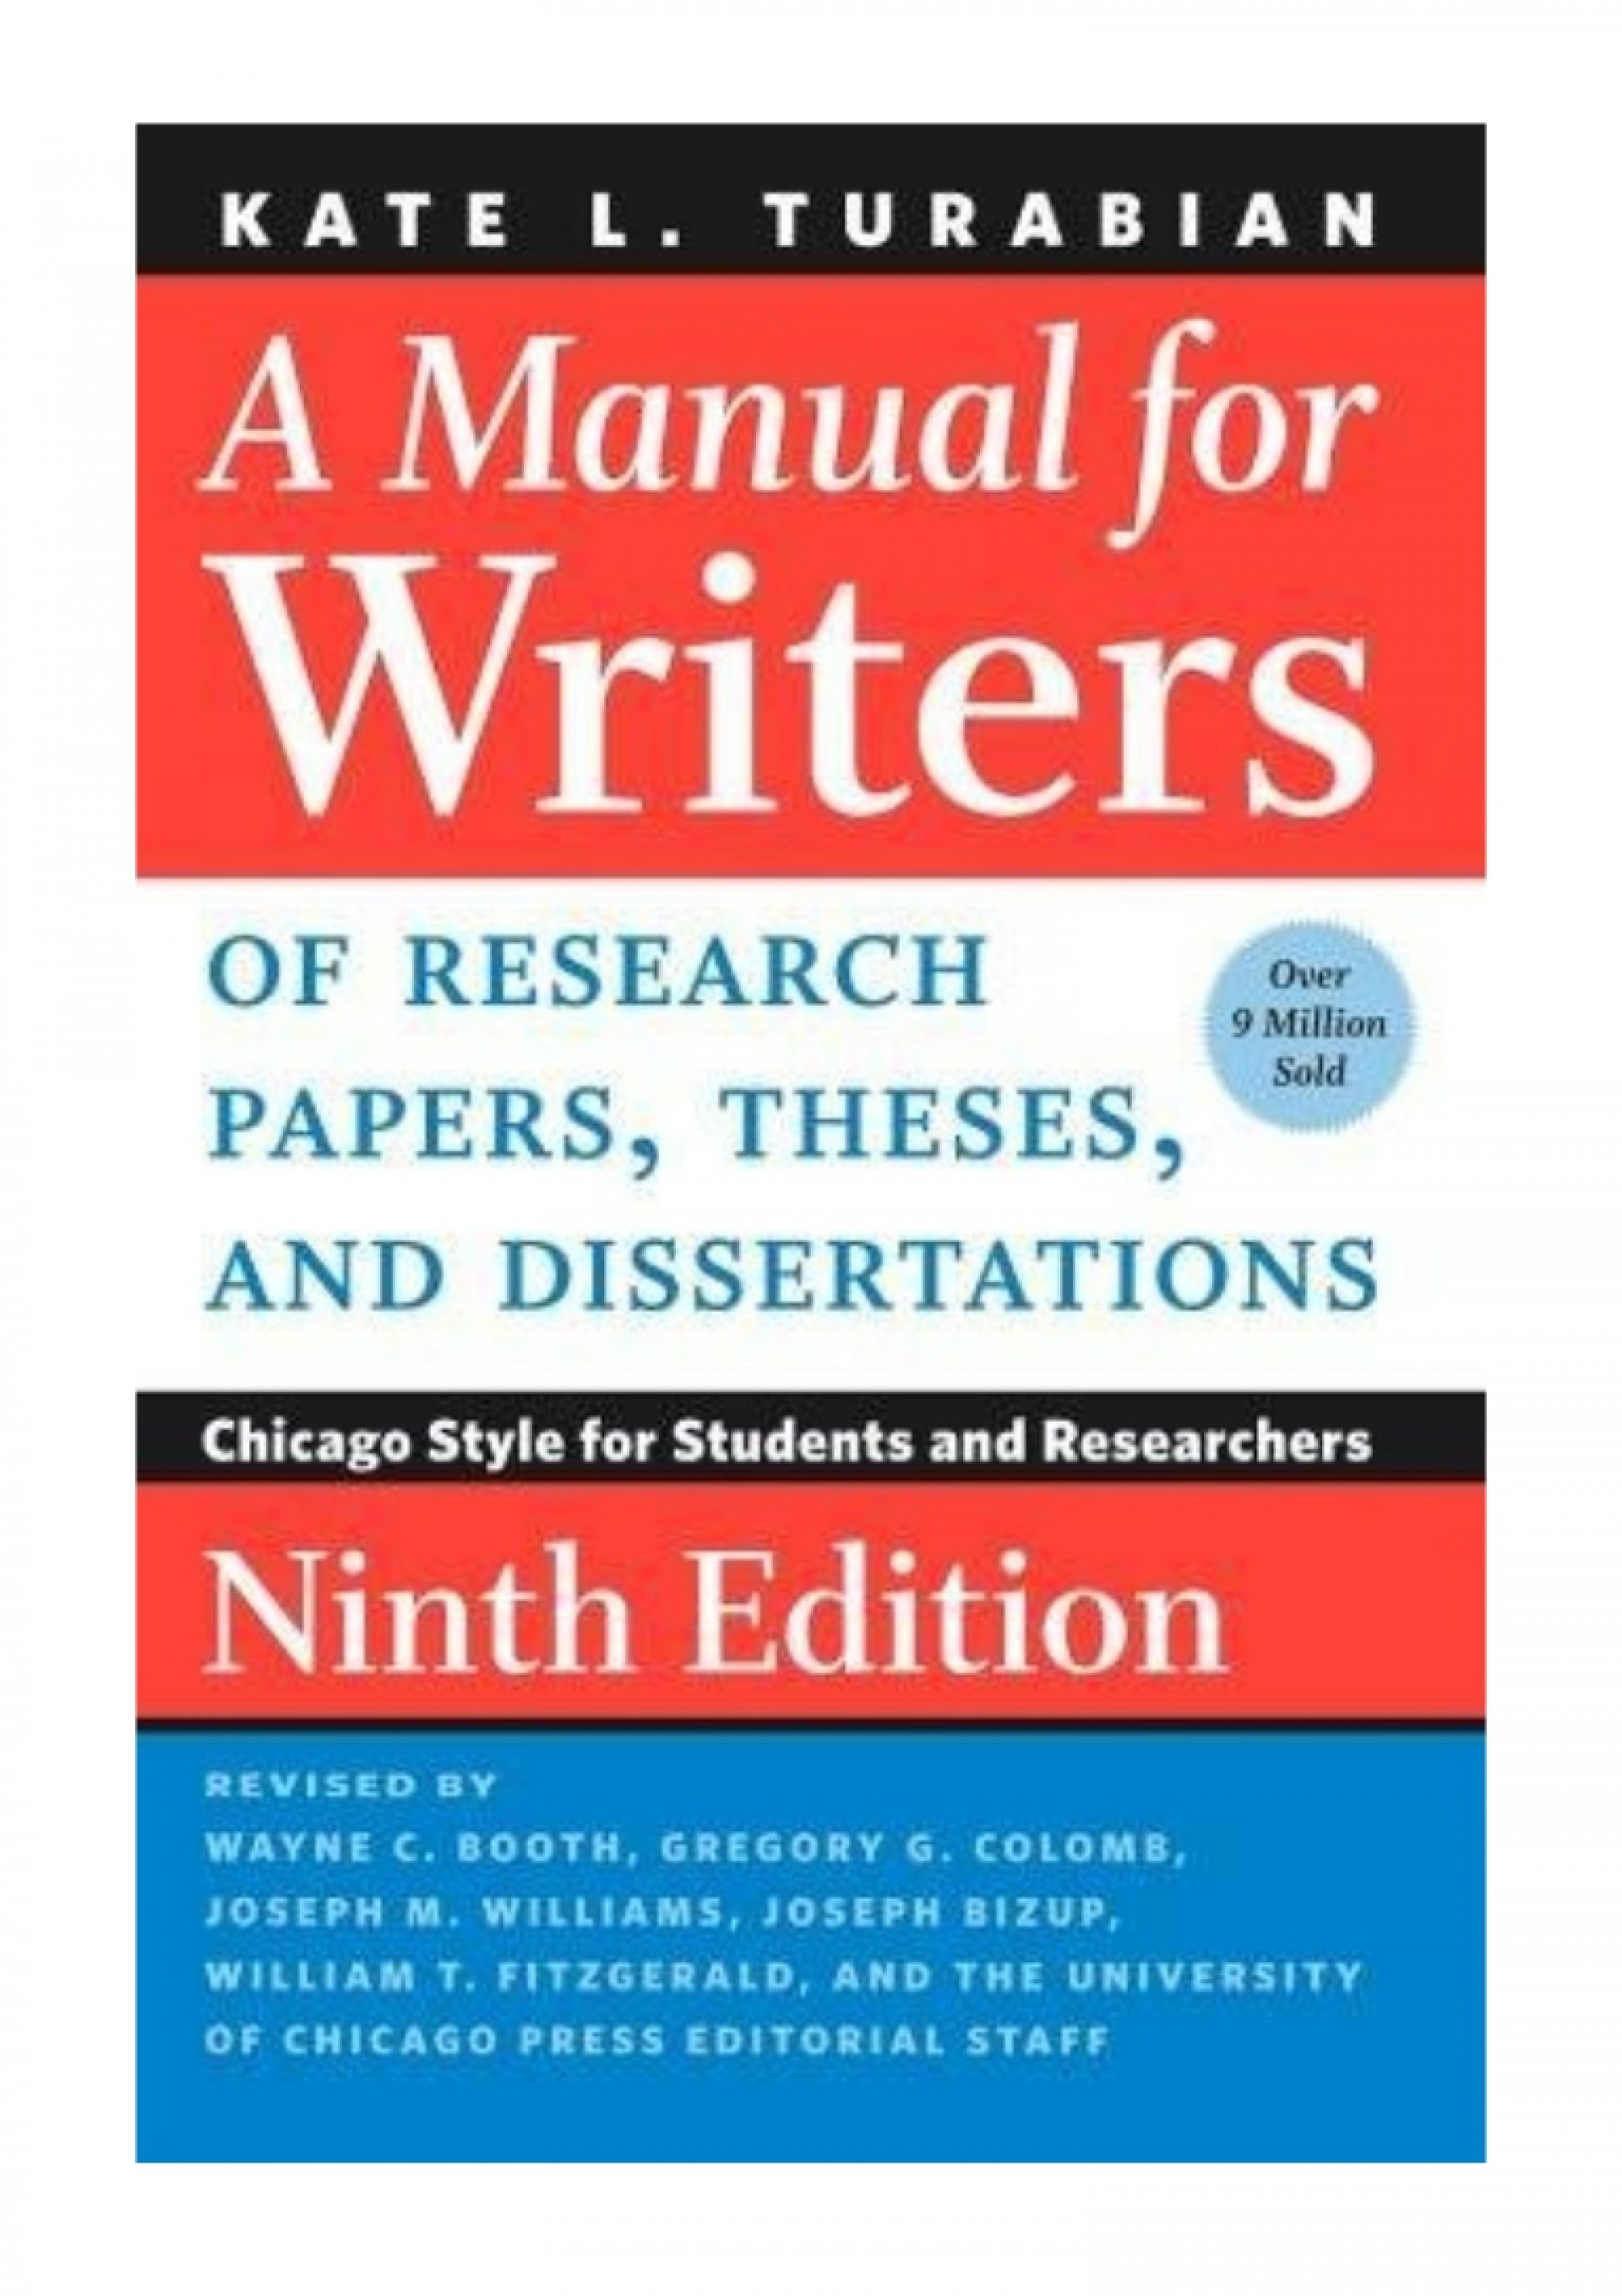 007 022643057x Amanualforwritersofresearchpapersthesesanddissertationsnintheditionbykatel Thumbnail Research Paper Manual For Writers Of Papers Theses And Sensational A Dissertations Eighth Edition Pdf 9th 8th 1920